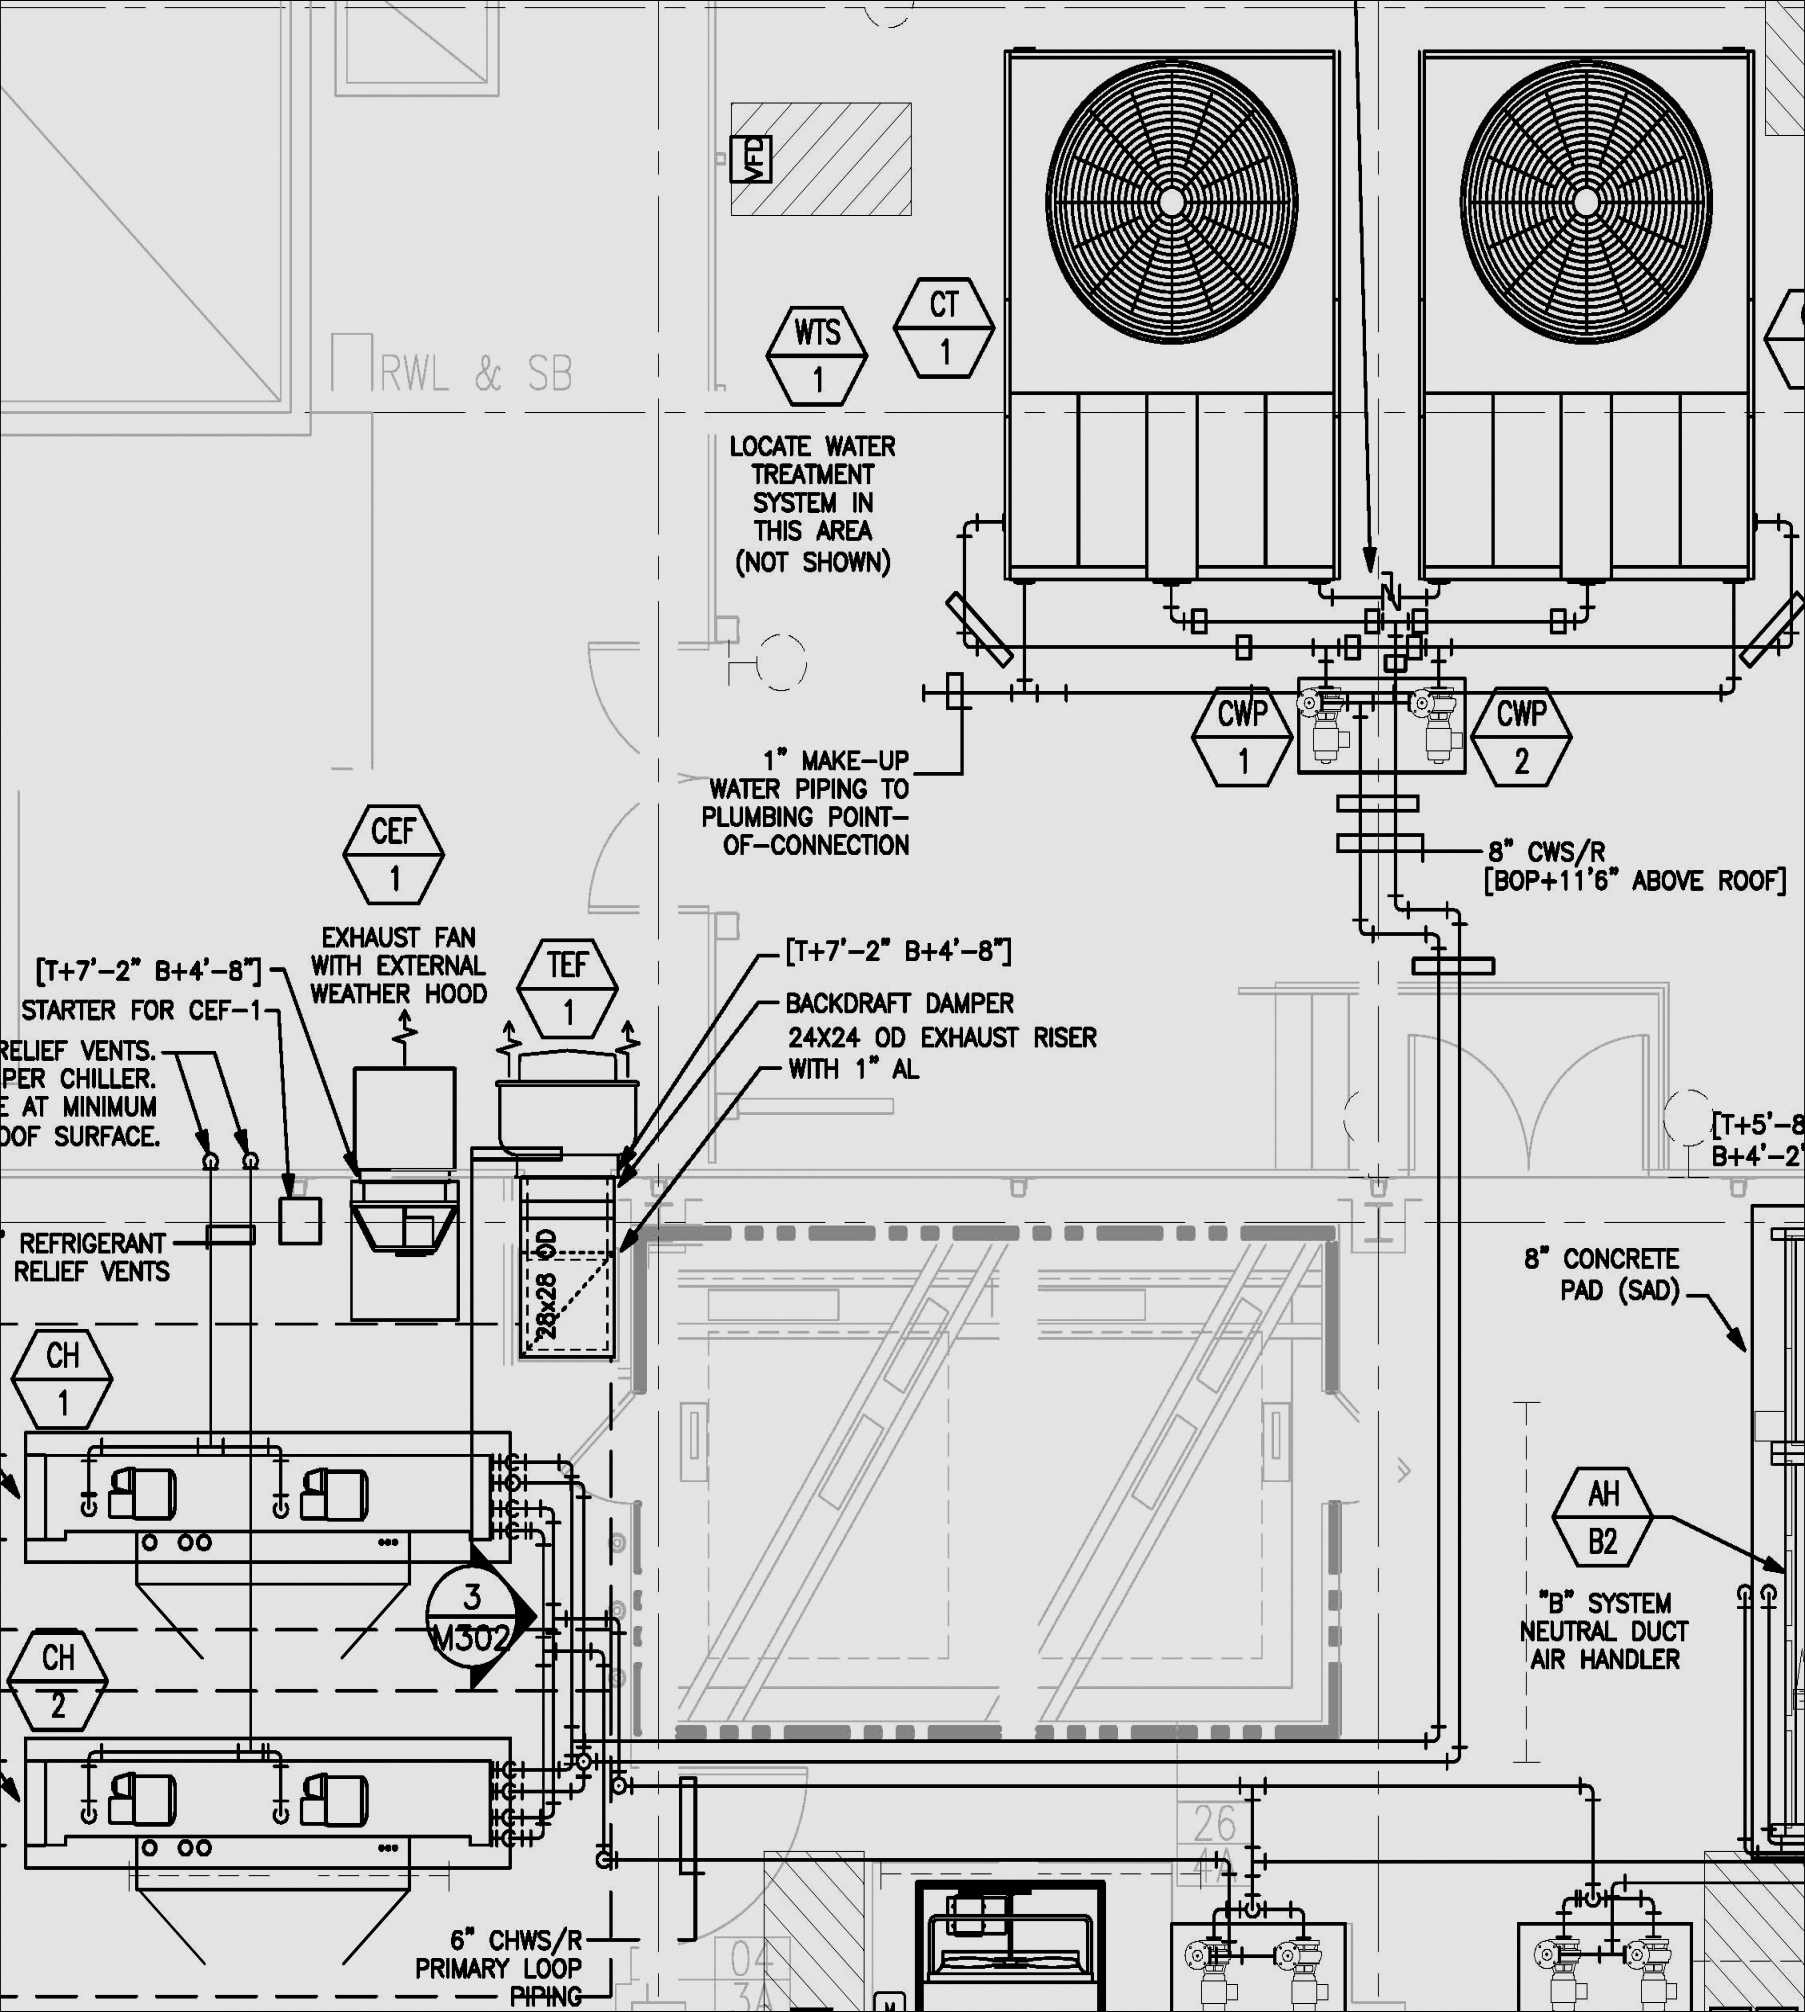 Coil Wiring Diagram Points and Condenser Wiring Diagram New Ignition Coil Wiring Diagram